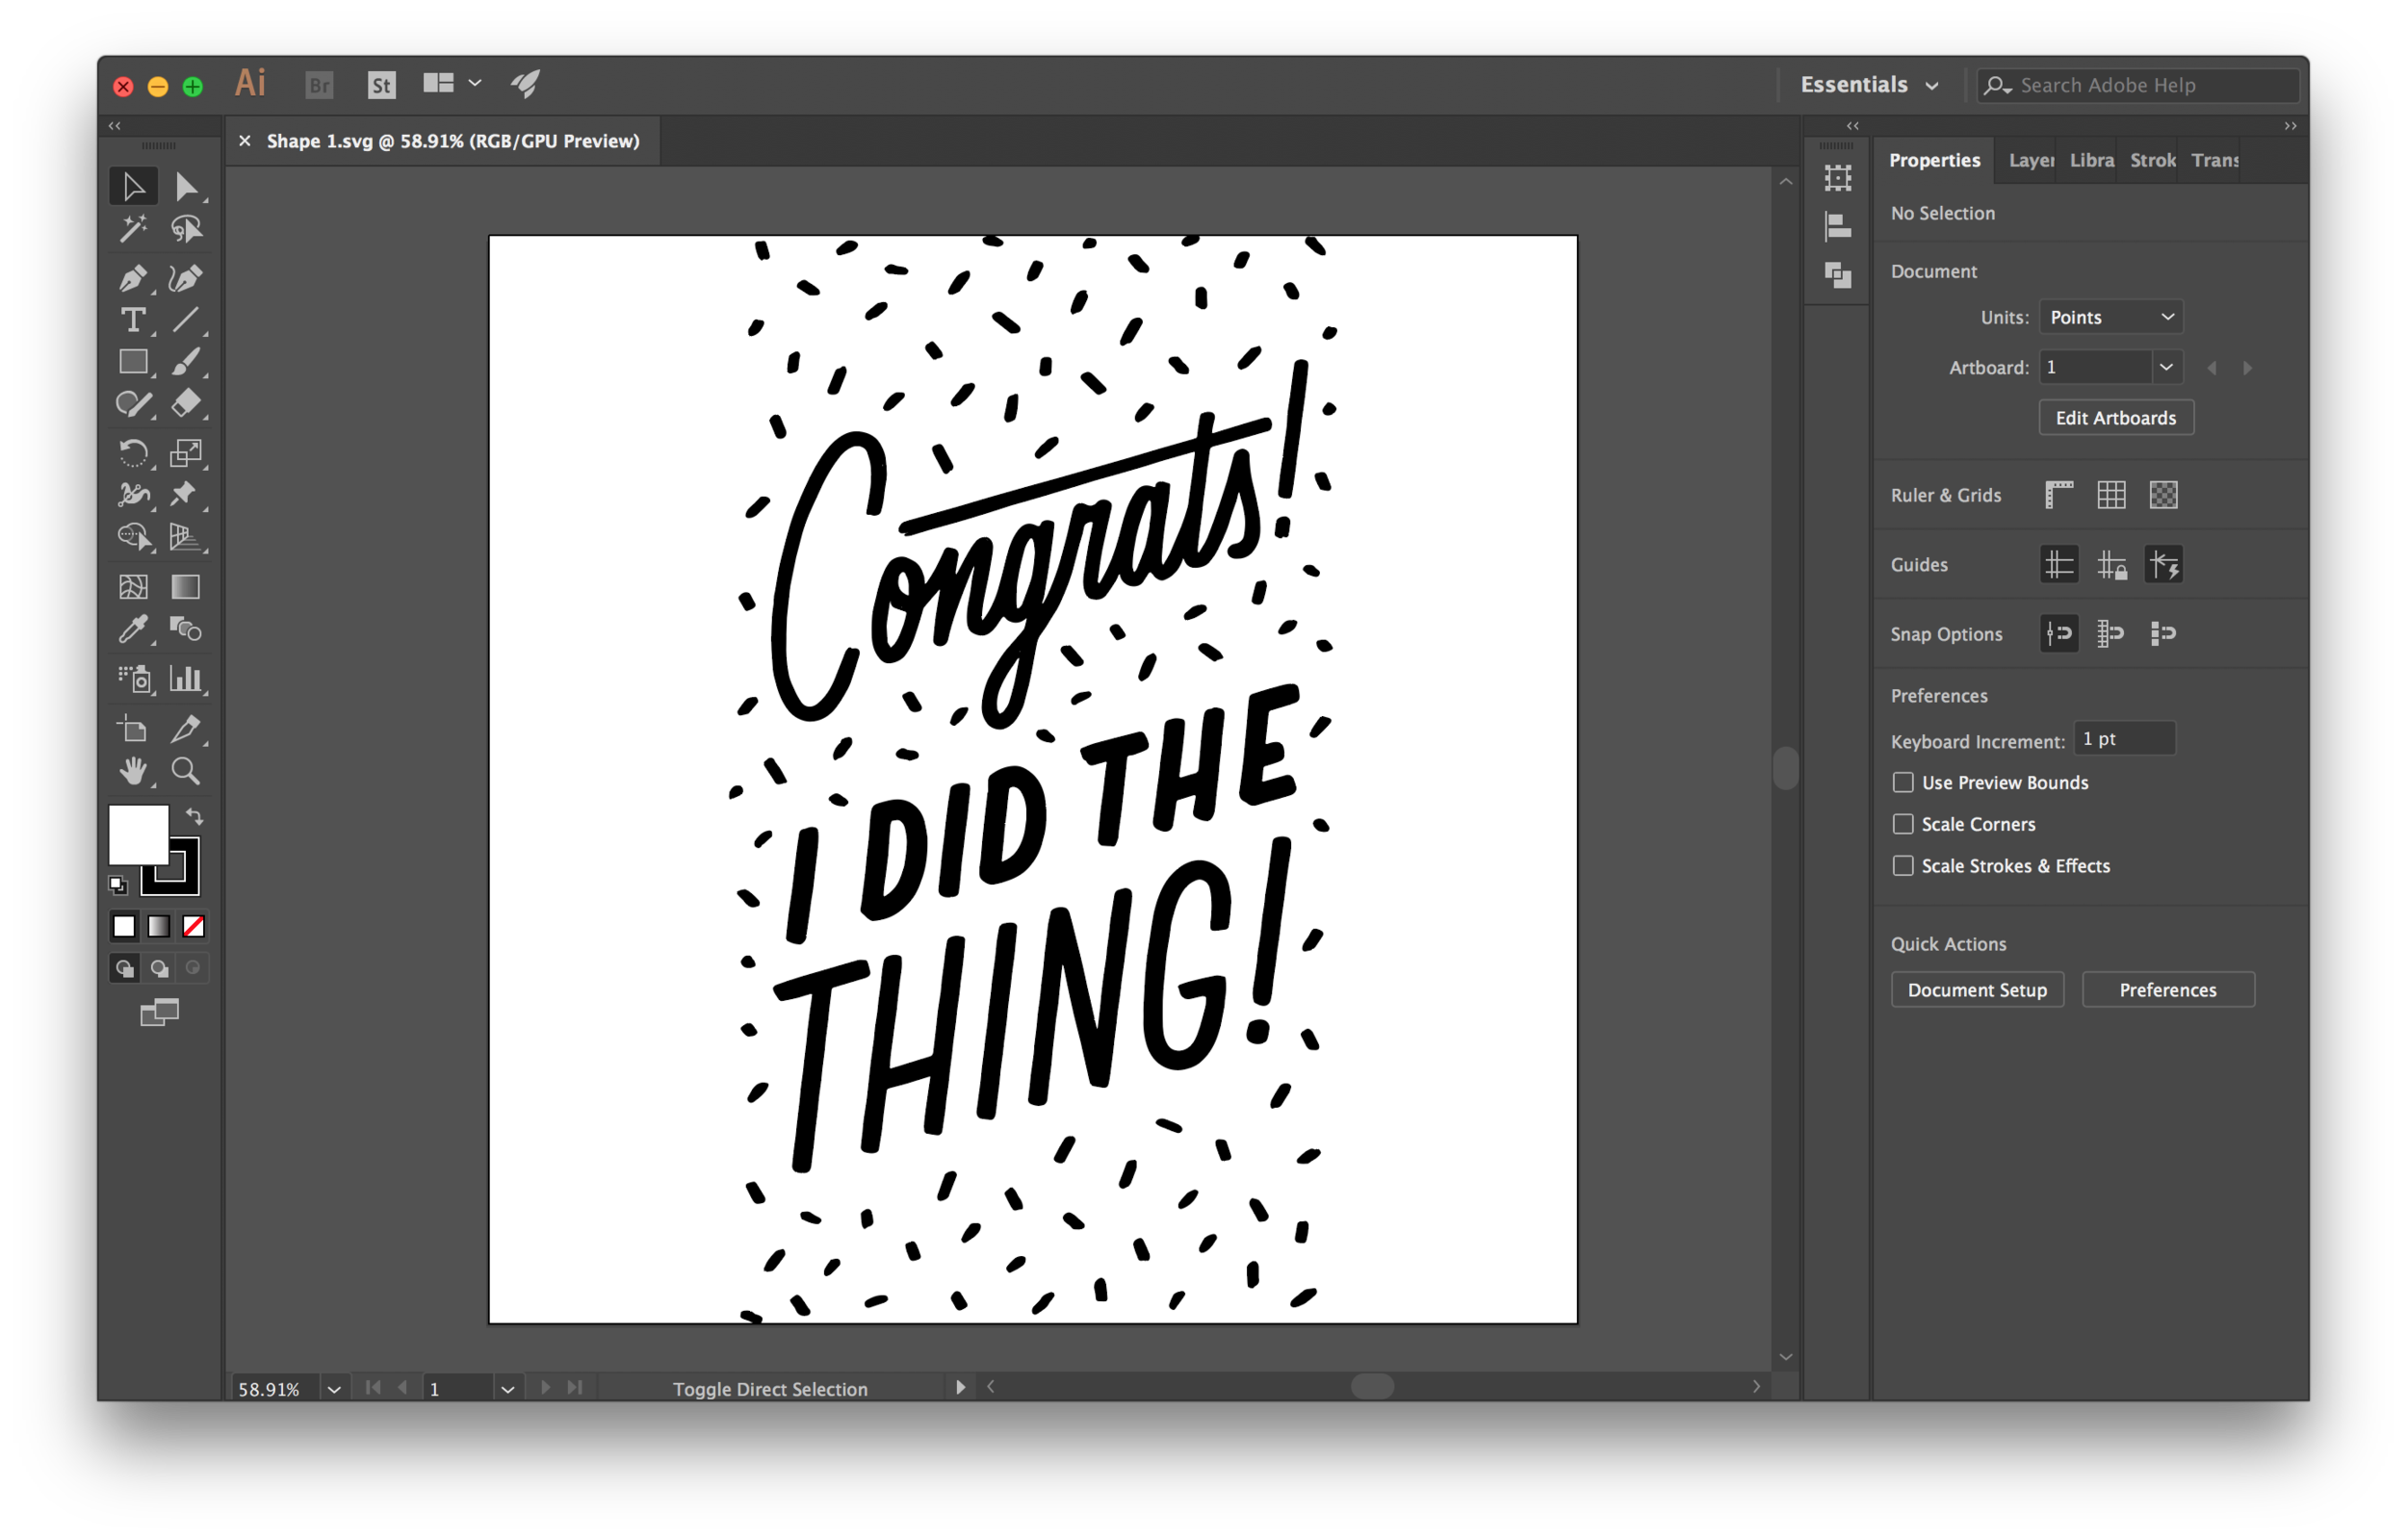 TA-DAAAAAA! I'm delighted and amazed at how seamless these programs work every time I use this function. Now your lettering is in Adobe Illustrator as an SVG file. Select all of your vectorized lettering and  press ⌘C  to copy it.